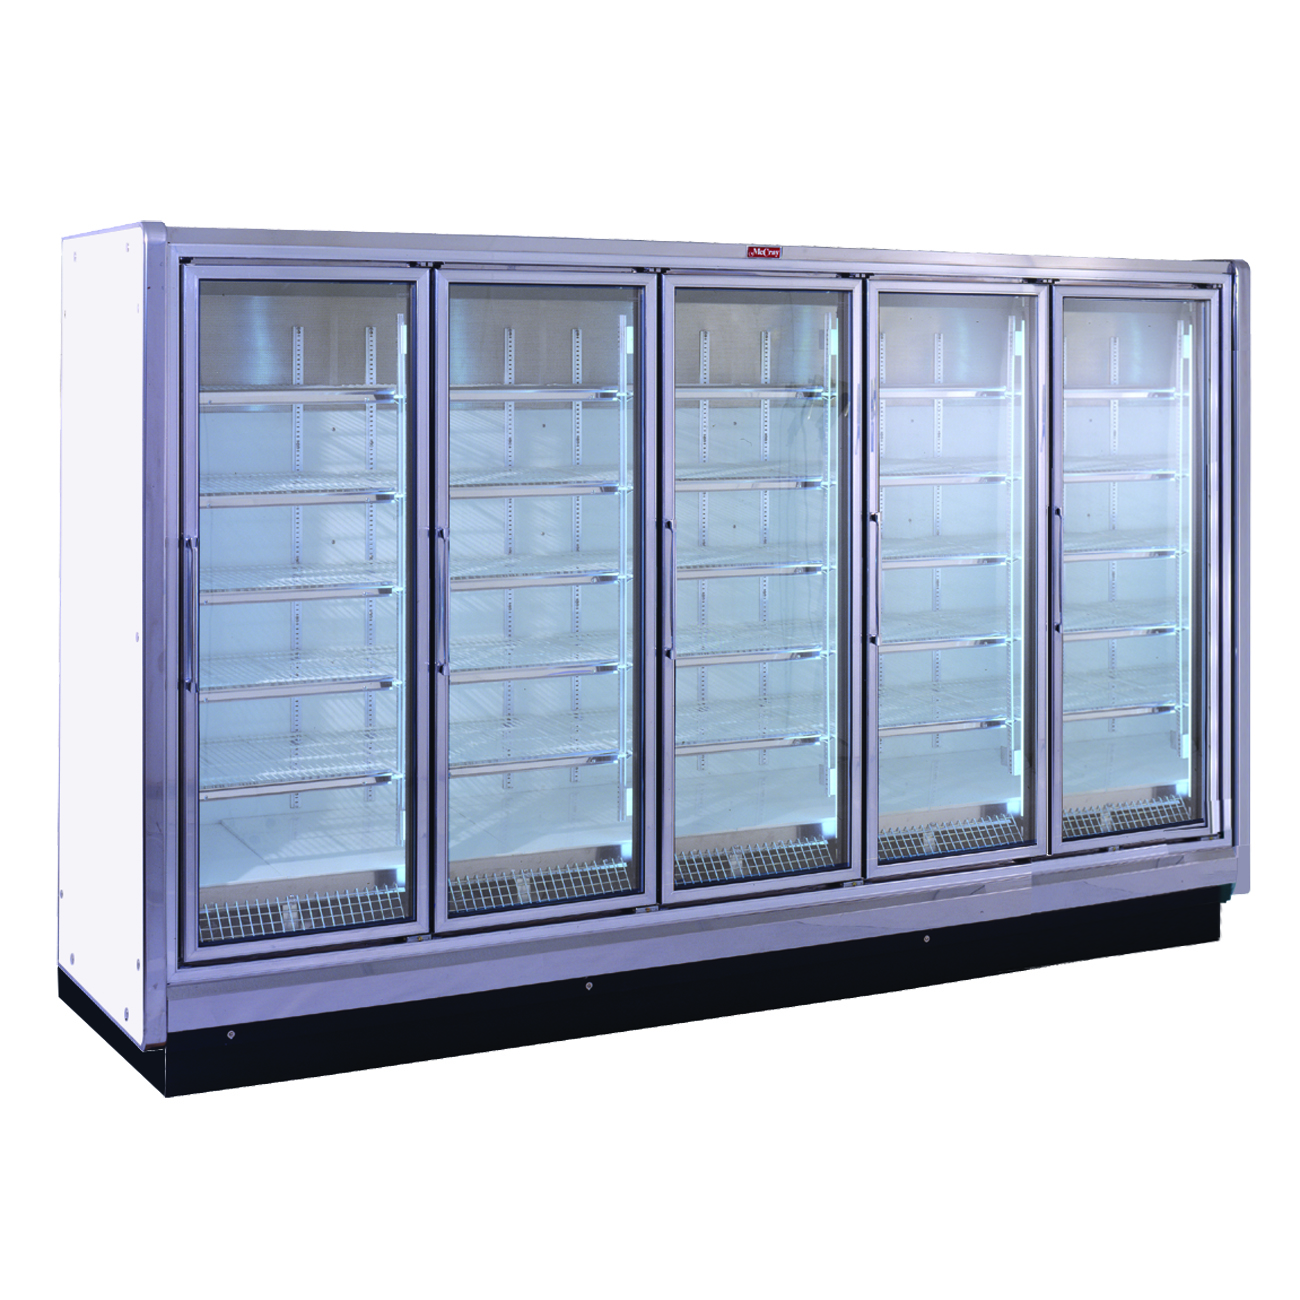 Howard-McCray RIF5-24-LED-S freezer, merchandiser